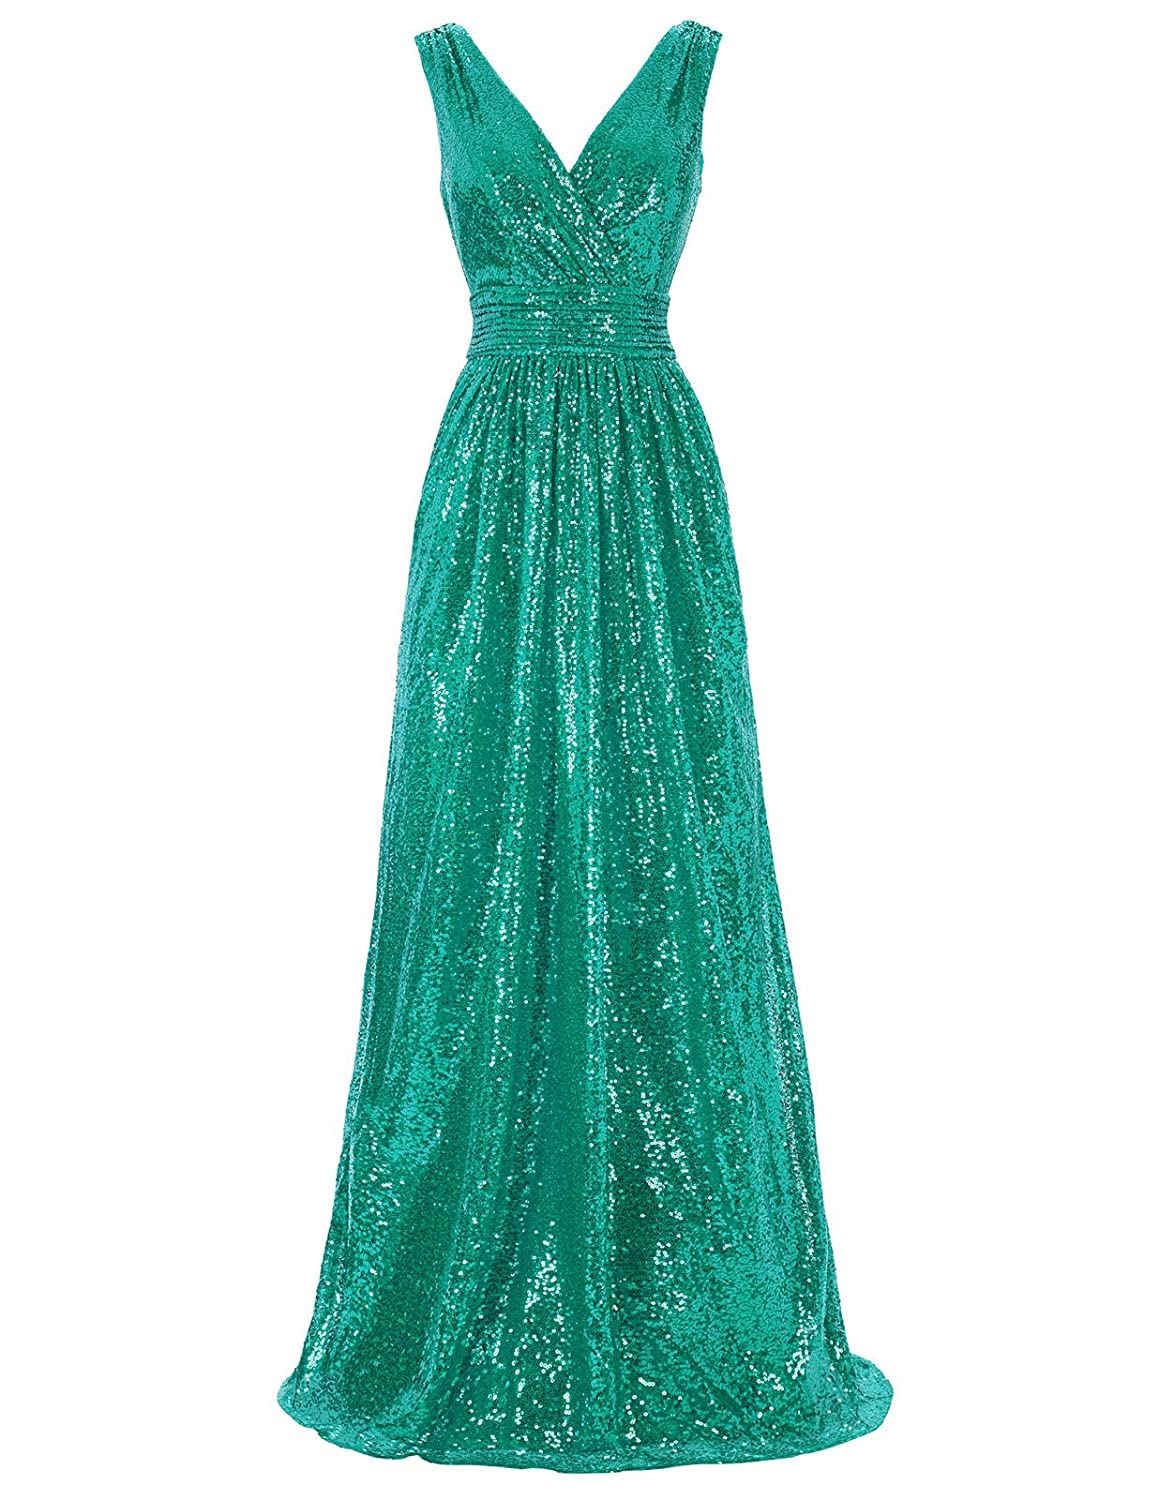 70s Prom, Formal, Evening, Party Dresses Kate Kasin Women Sequin Bridesmaid Dress Sleeveless Maxi Evening Prom Dresses $52.99 AT vintagedancer.com